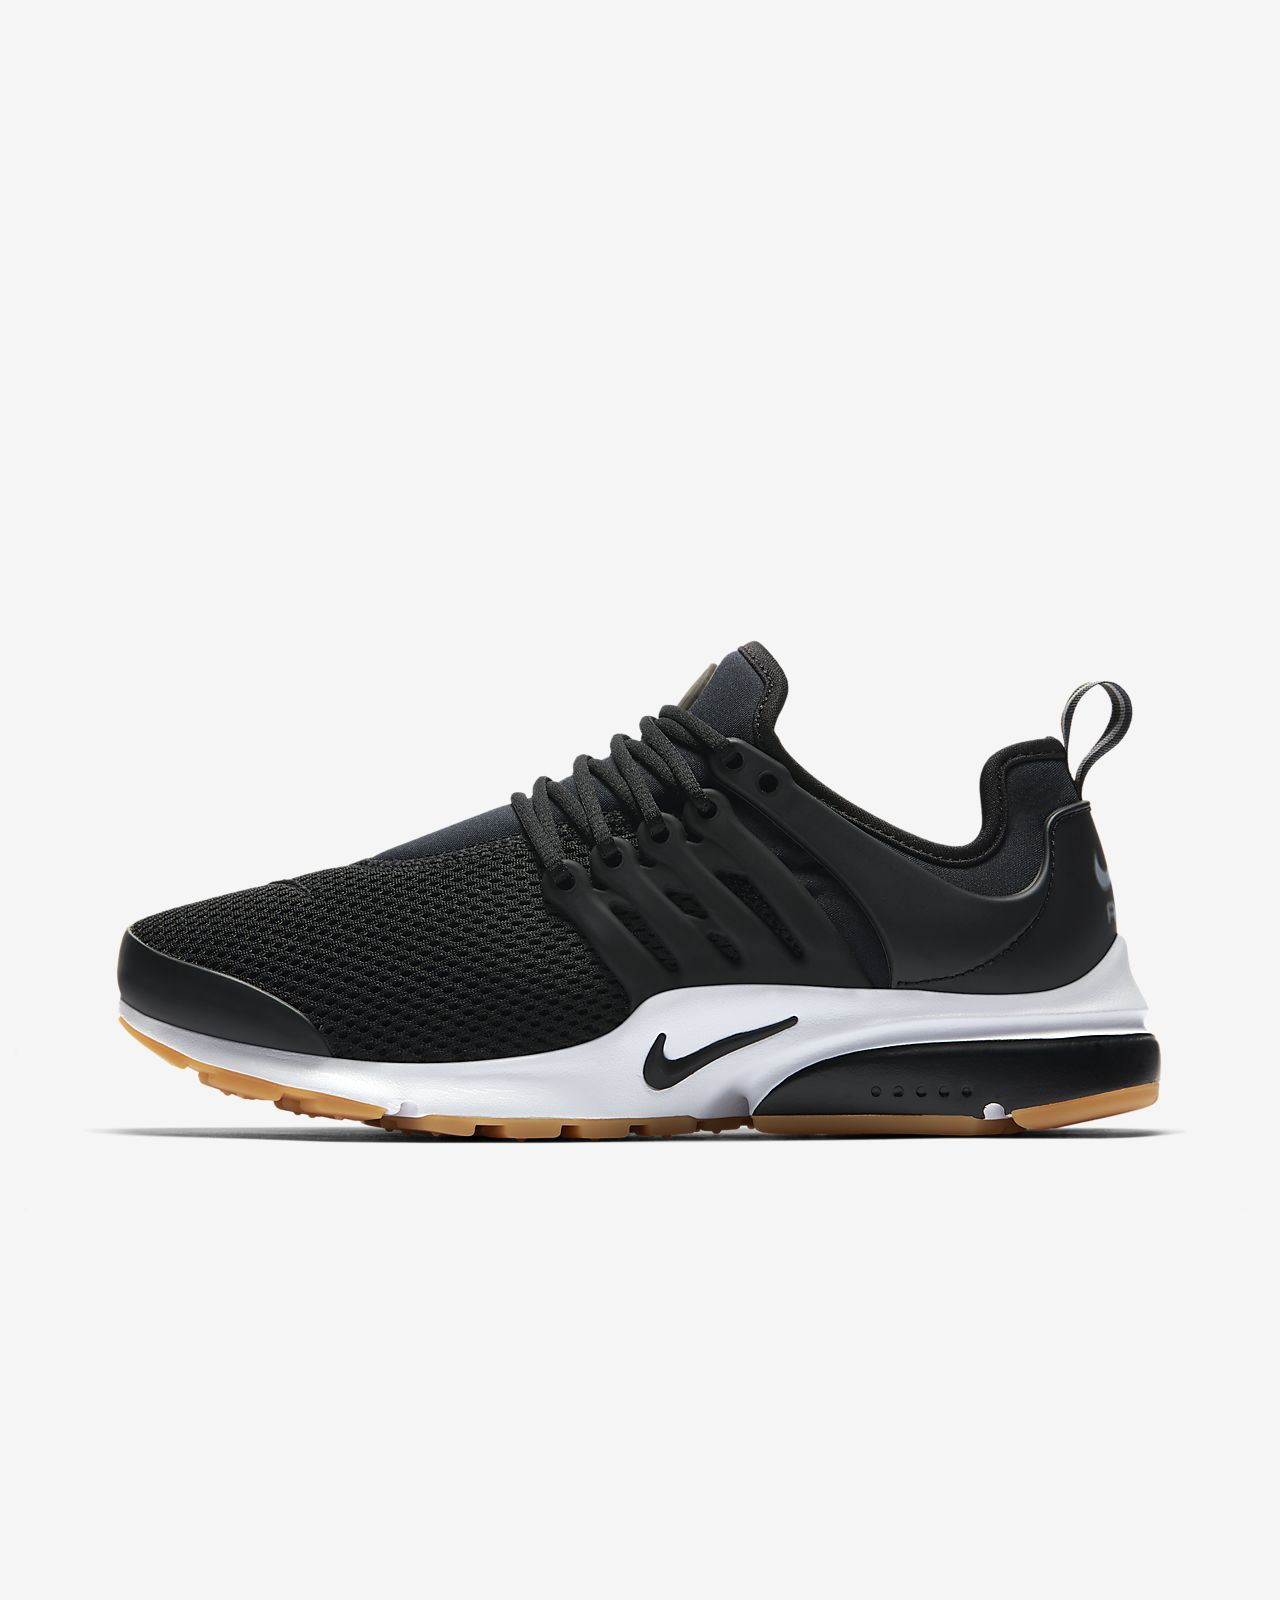 premium selection d5535 3a911 Nike Air Presto Women's Shoe